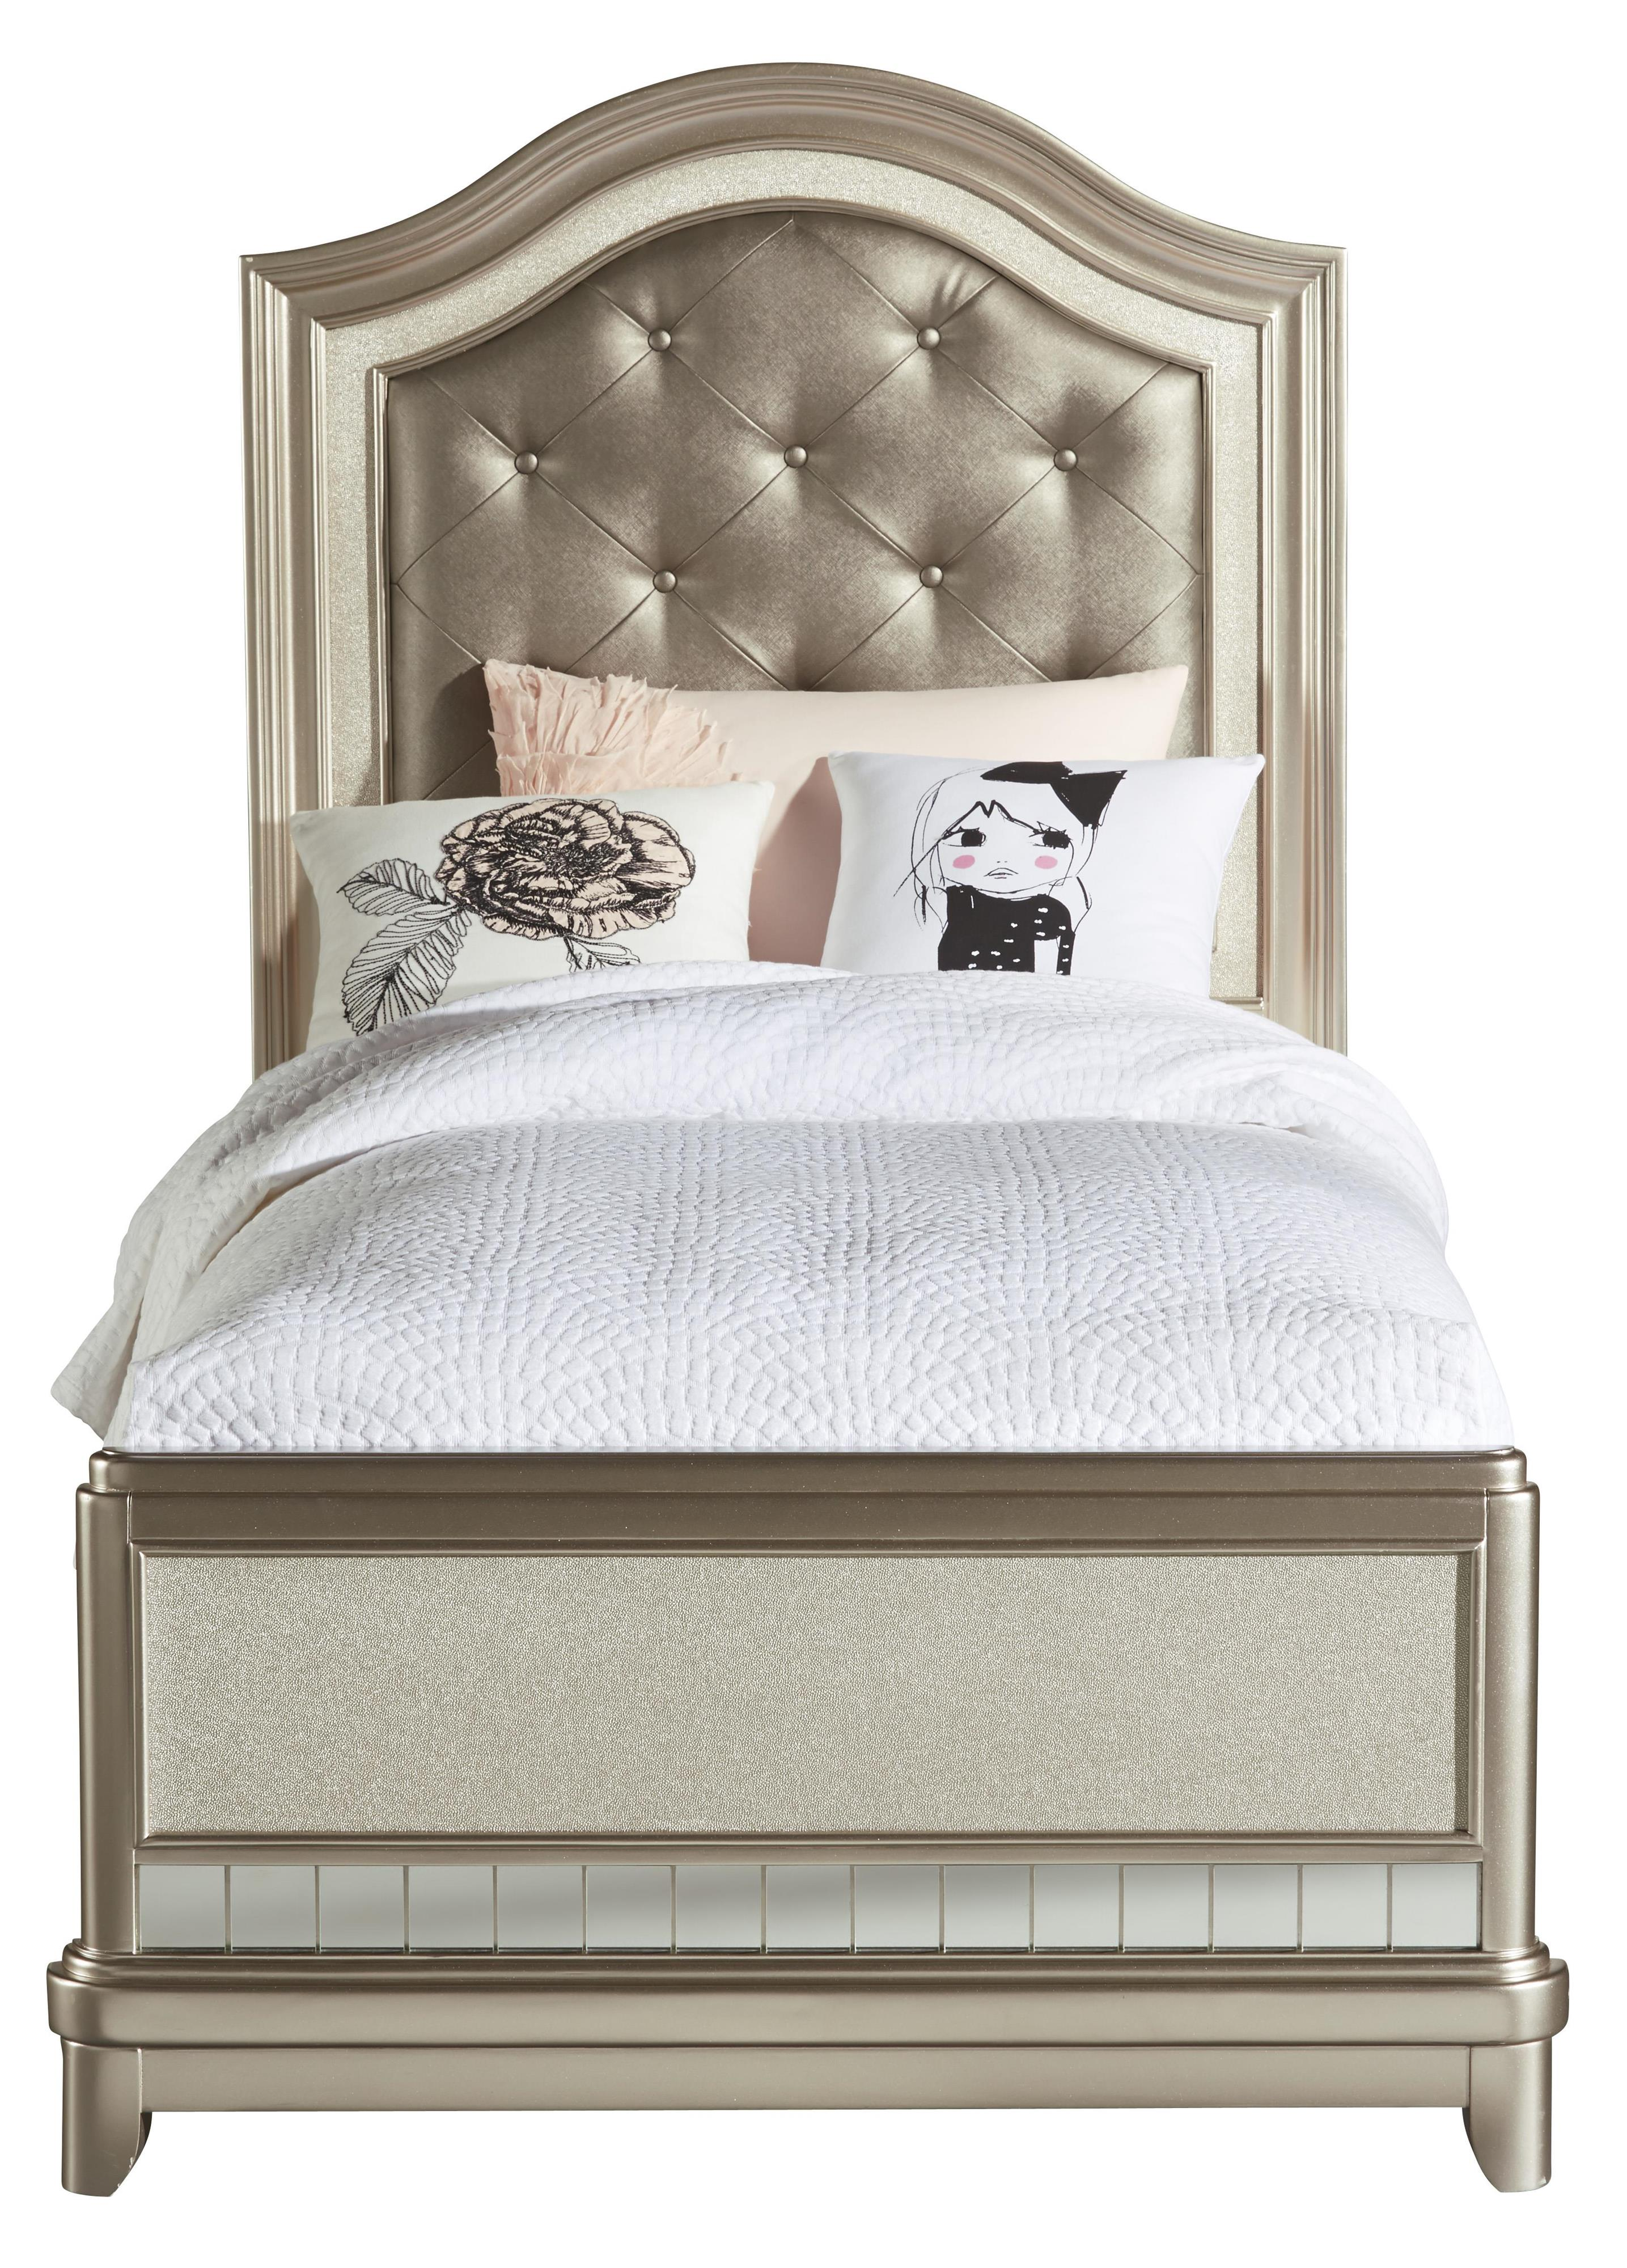 Lil South Beach Lil South Beach Twin Panel Bed by Samuel Lawrence at Morris Home